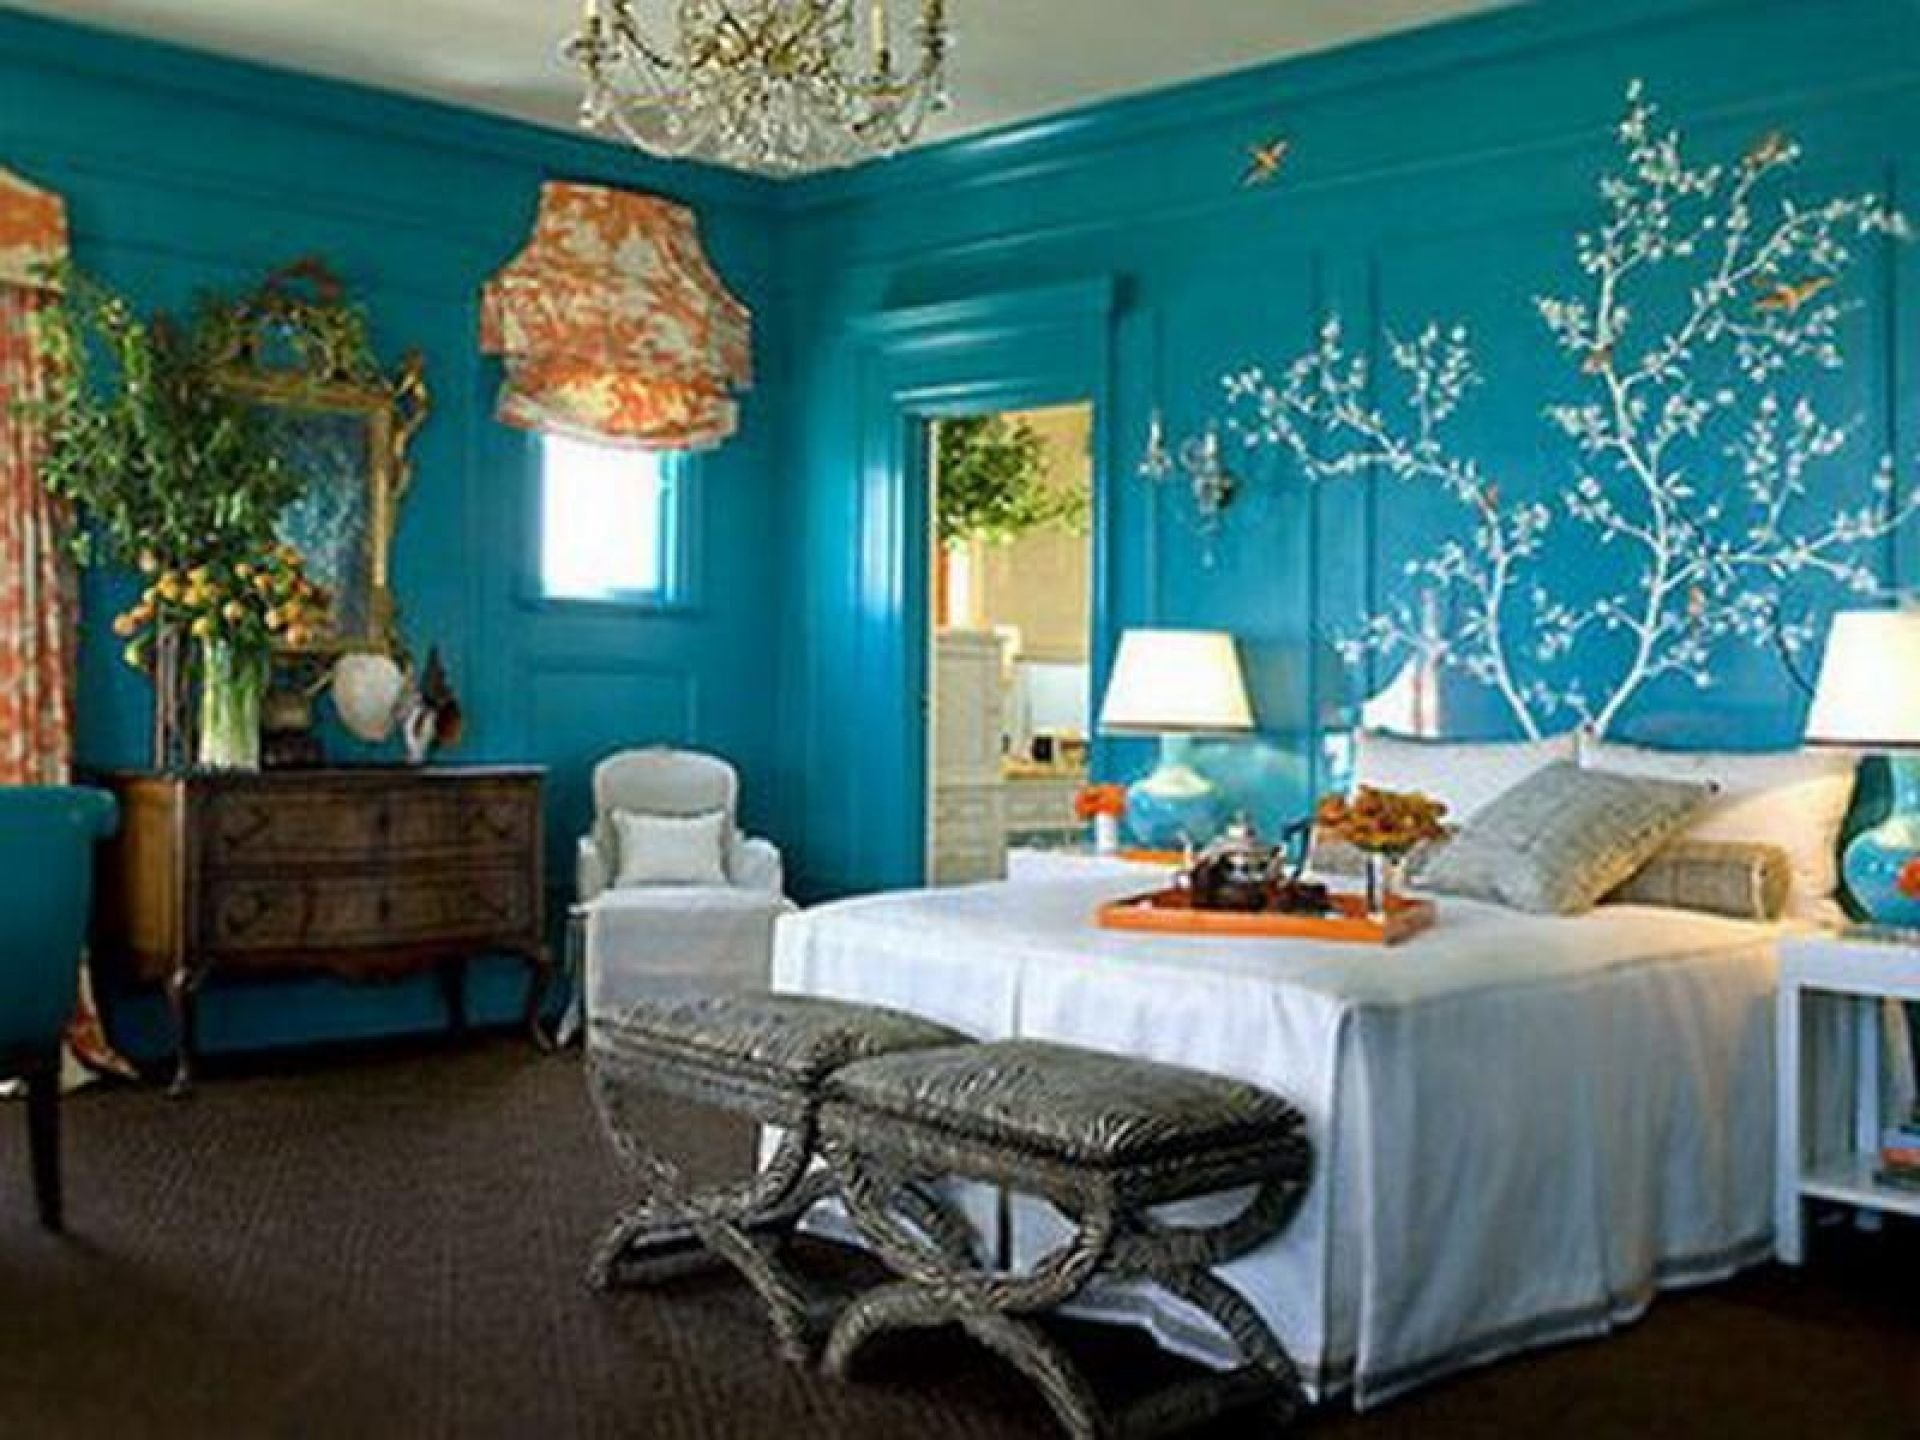 10 Fabulous Bedroom Ideas For Young Adults i bedroom theme ideas for young adults bedroom ideas for young 2021